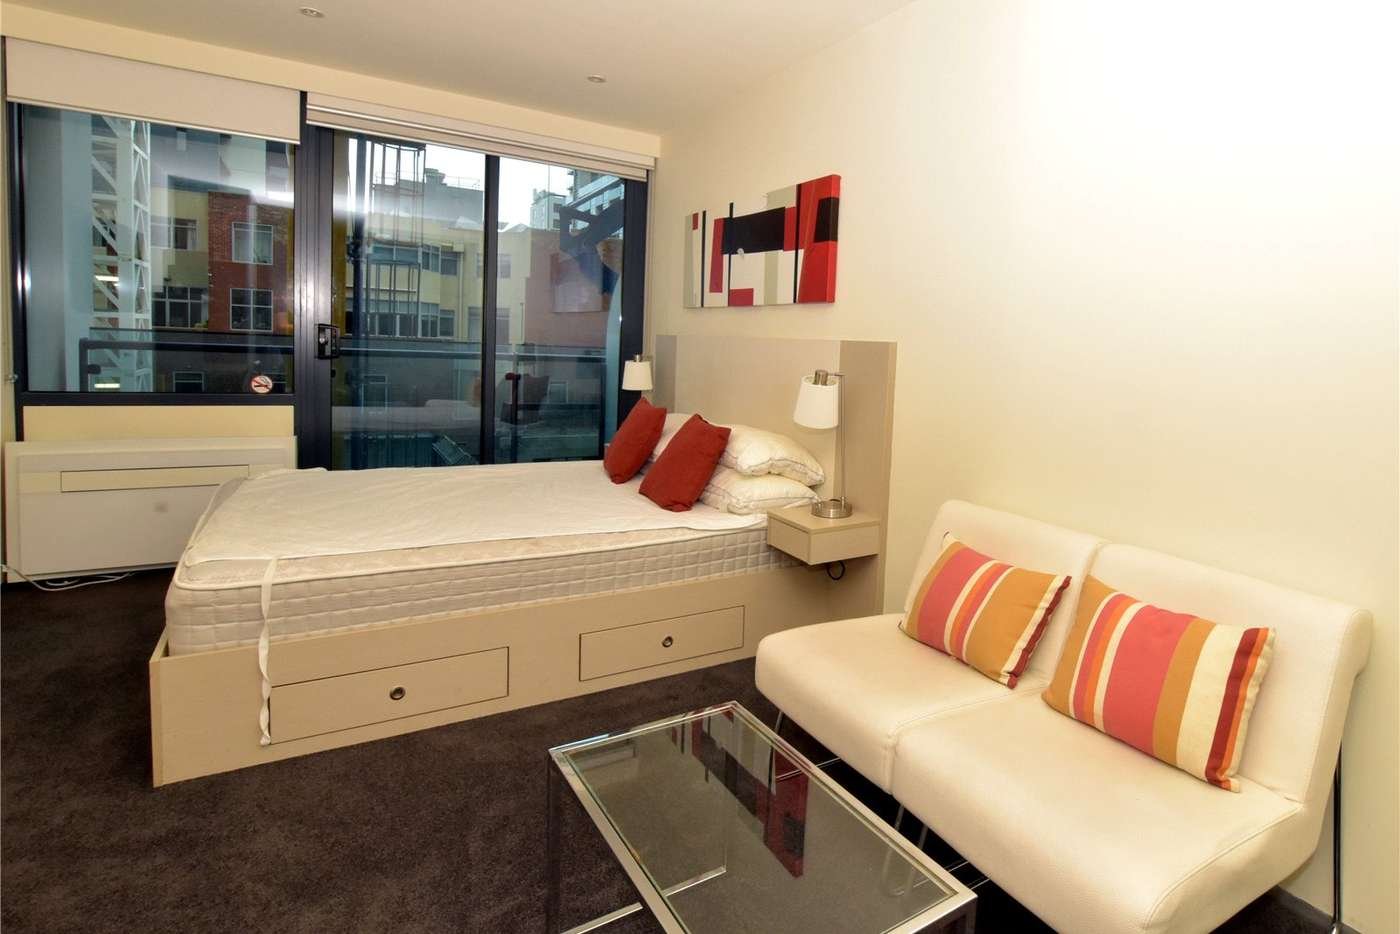 Main view of Homely studio listing, 510/181 ABeckett Street, Melbourne VIC 3000